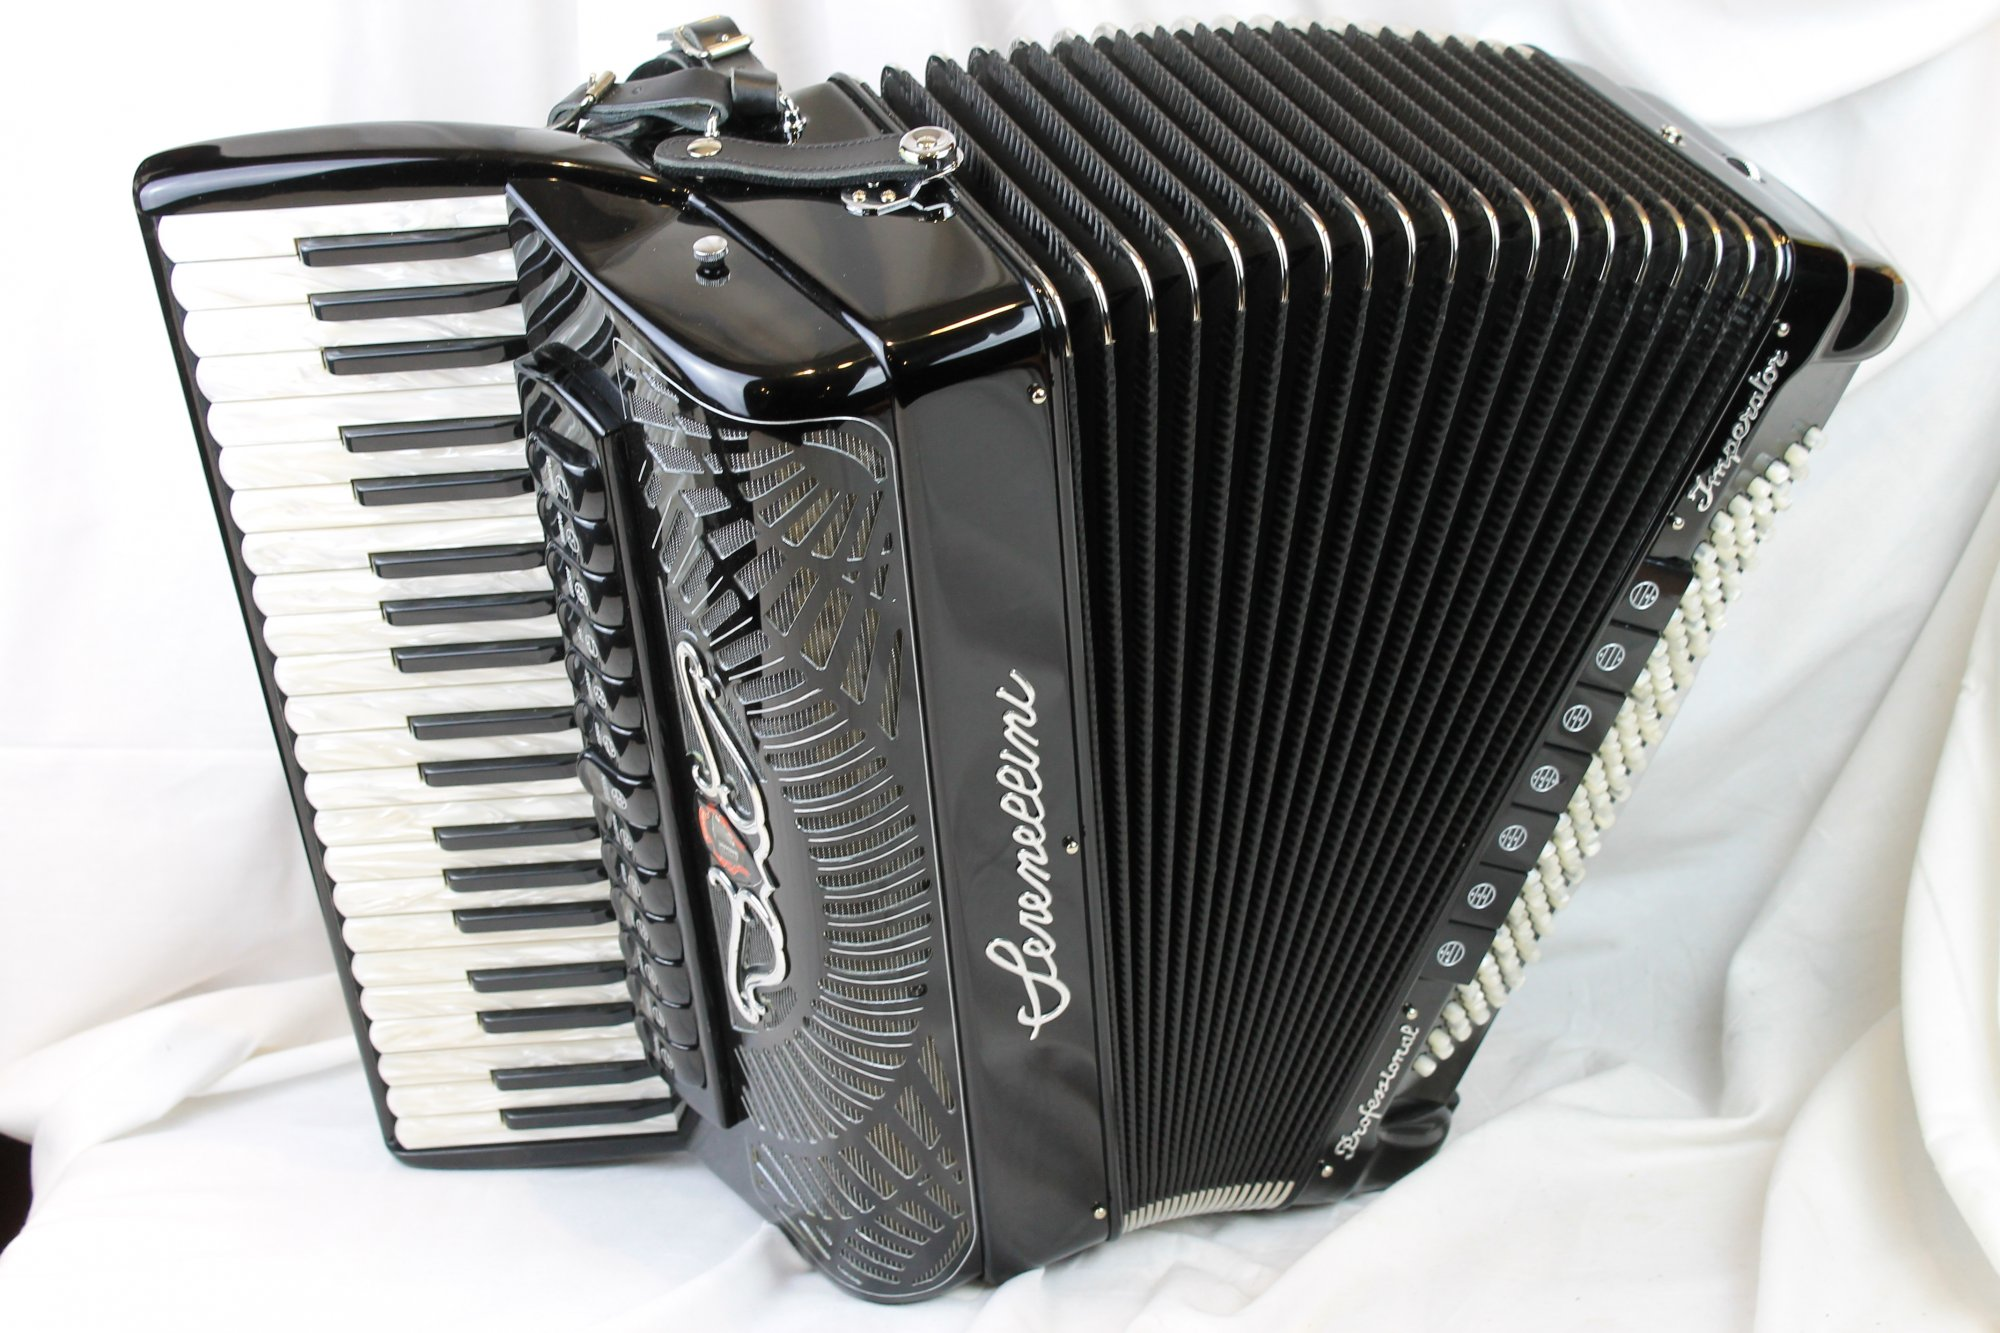 NEW Black Serenellini Imperator IV Silver Piano Accordion LMMH 41 120